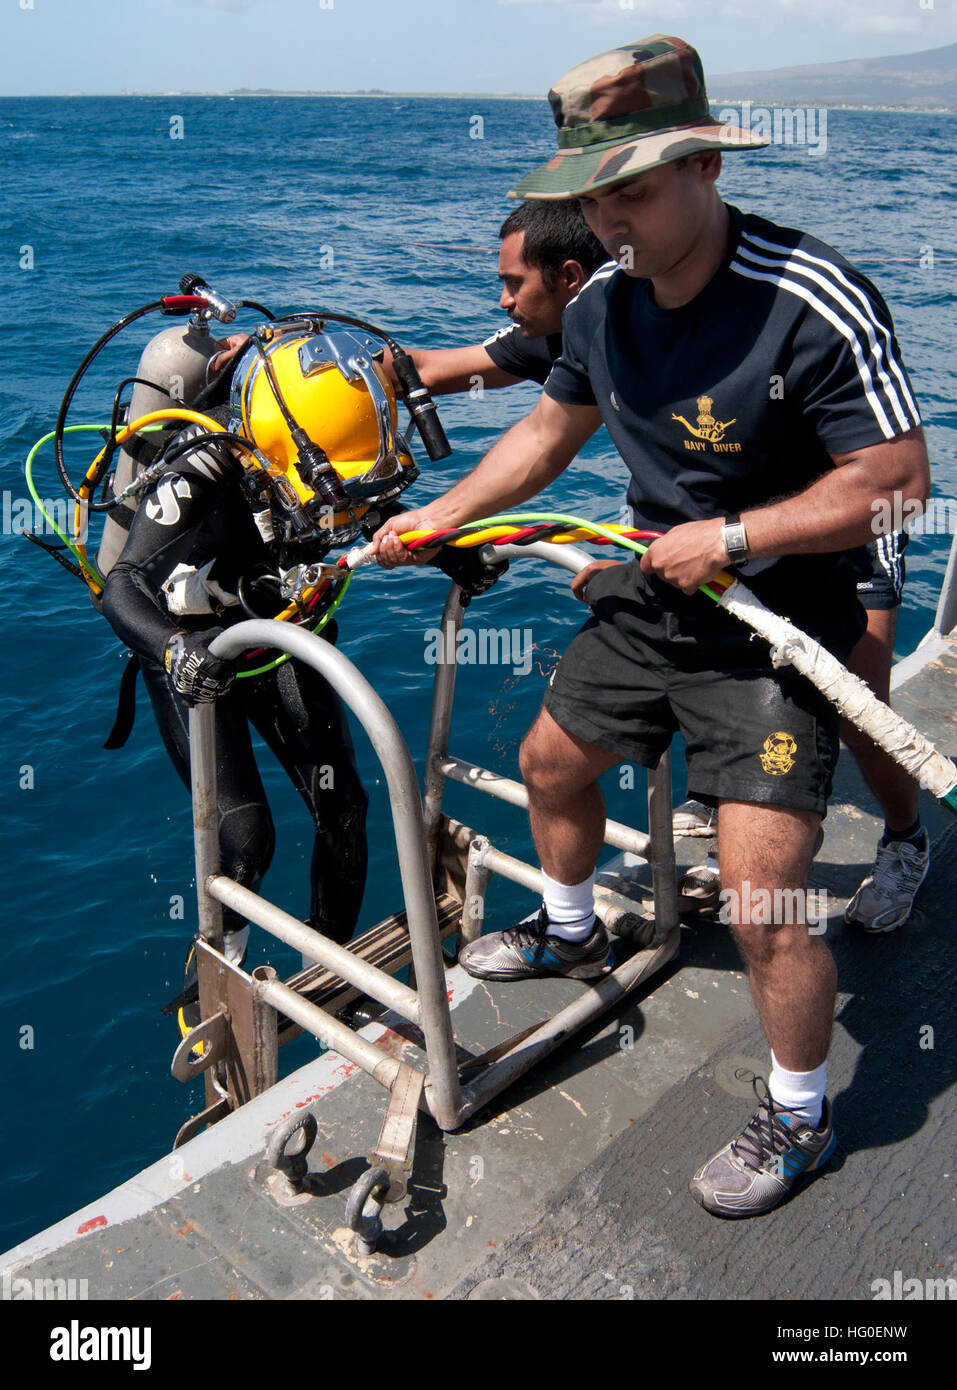 120213-N-WX059-049 PACIFIC OCEAN (Feb. 13, 2012) Indian navy Leading Seaman Clearance Diver 2nd Class Rajeev Kumar - Stock Image